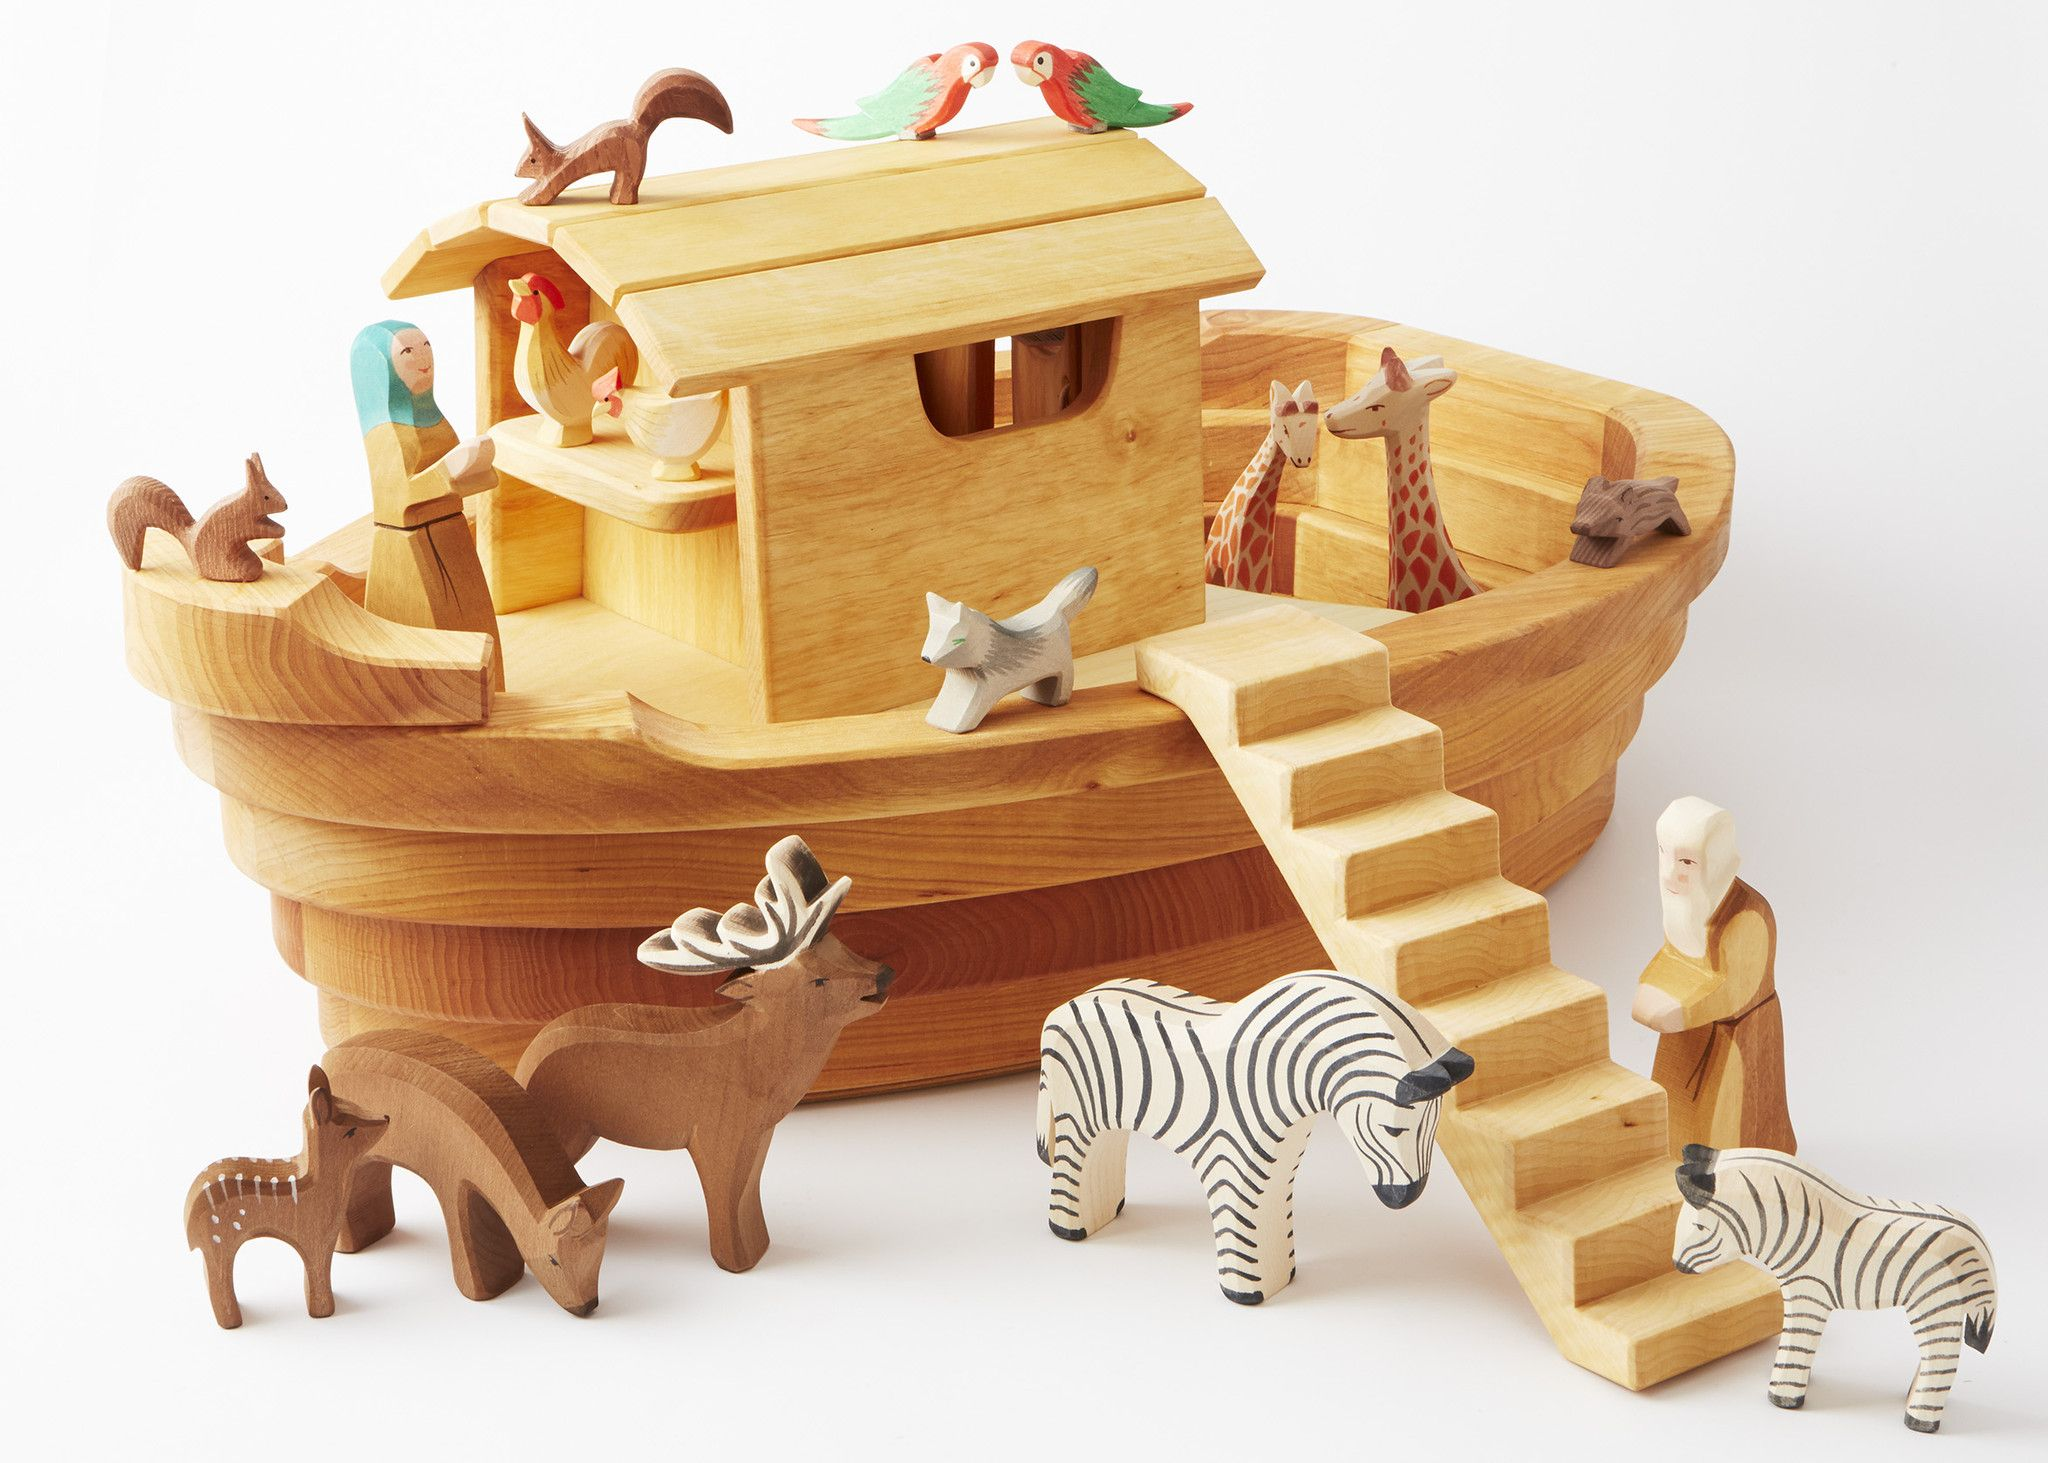 Ostheimer wooden animal toys are hand crafted specially for